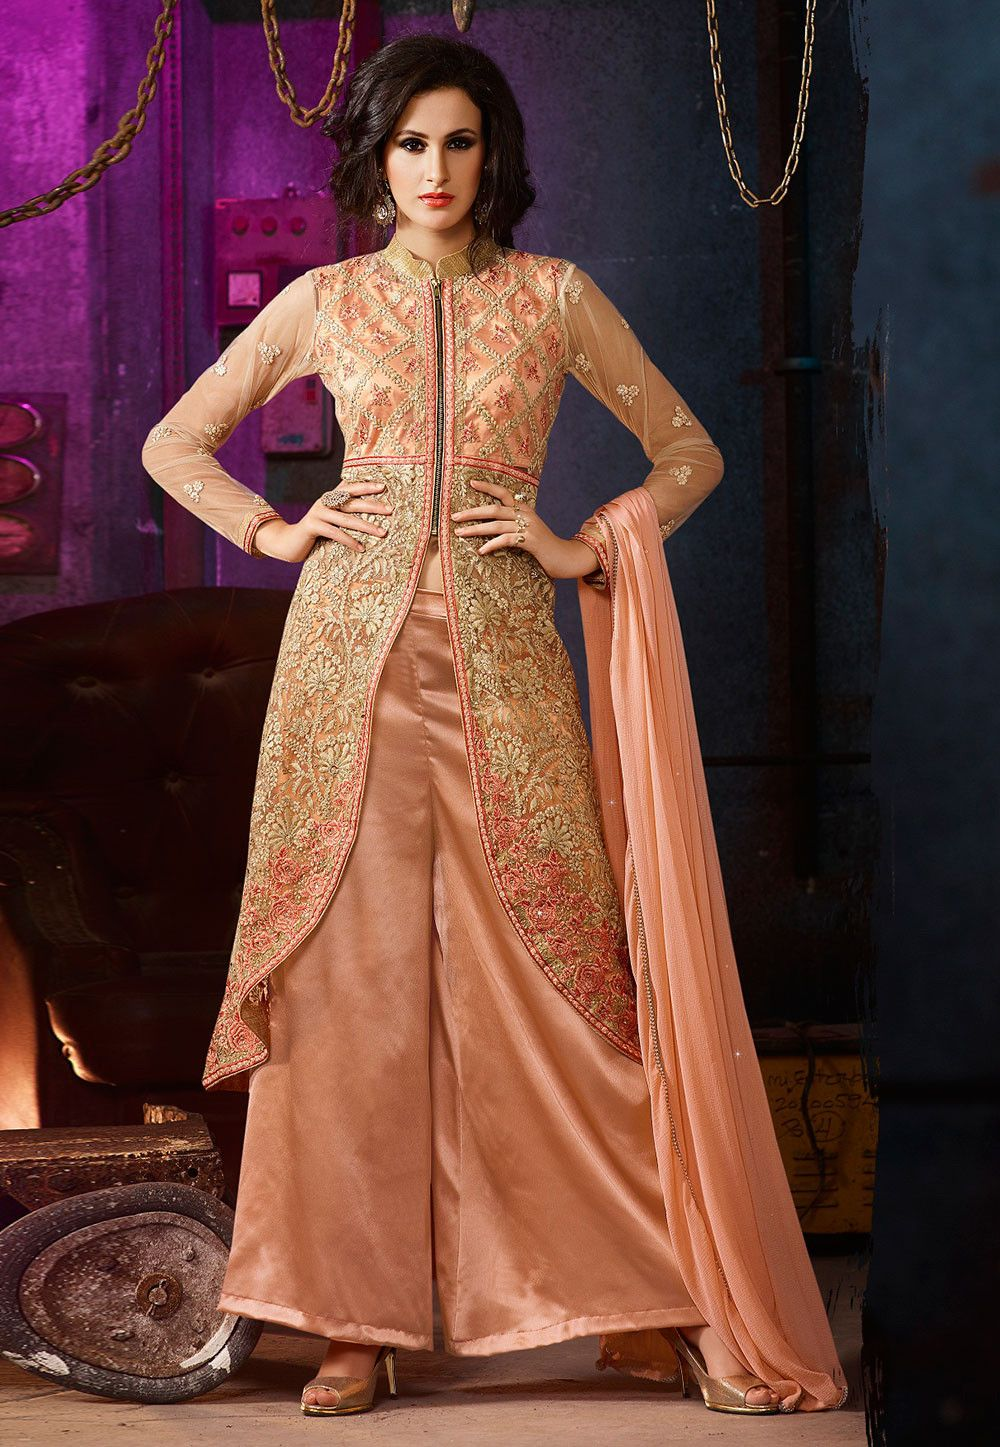 ea0f8789b8 Embroidered Net Jacket Style Pakistani Suit in Peach | Wedding ...